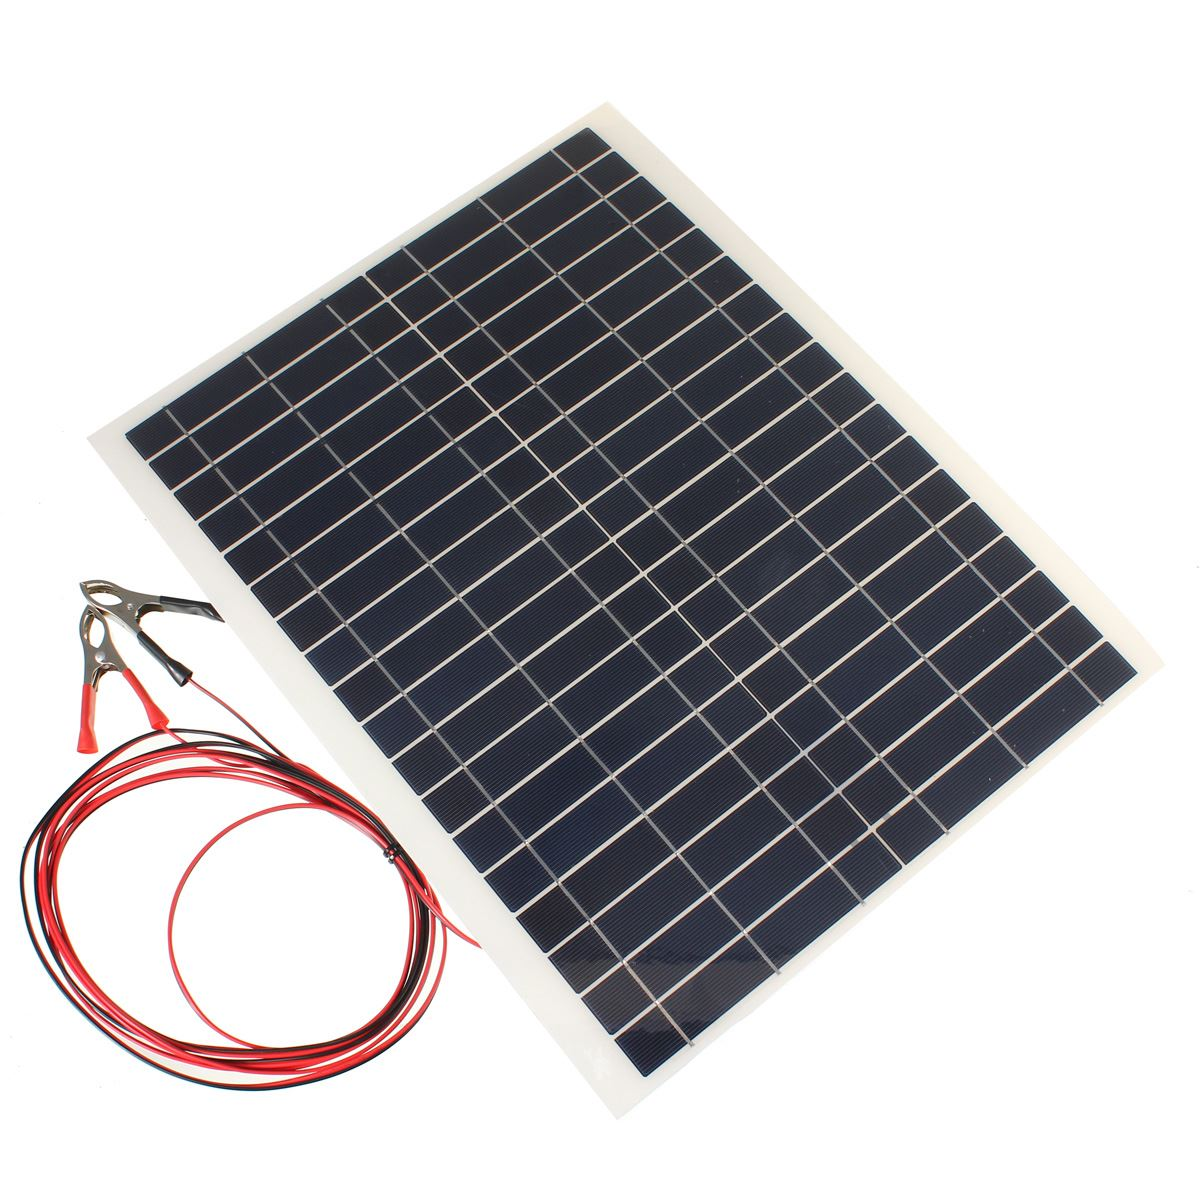 LEORY Hot 20W 12V PolyCrystalline Epoxy Cells Solar Panel DIY Solar Module Battery Power Charger+2x Alligator Clips+4m Cable high quality 18v 2 5w polycrystalline stored energy power solar panel module system solar cells charger 19 4x12x0 3cm